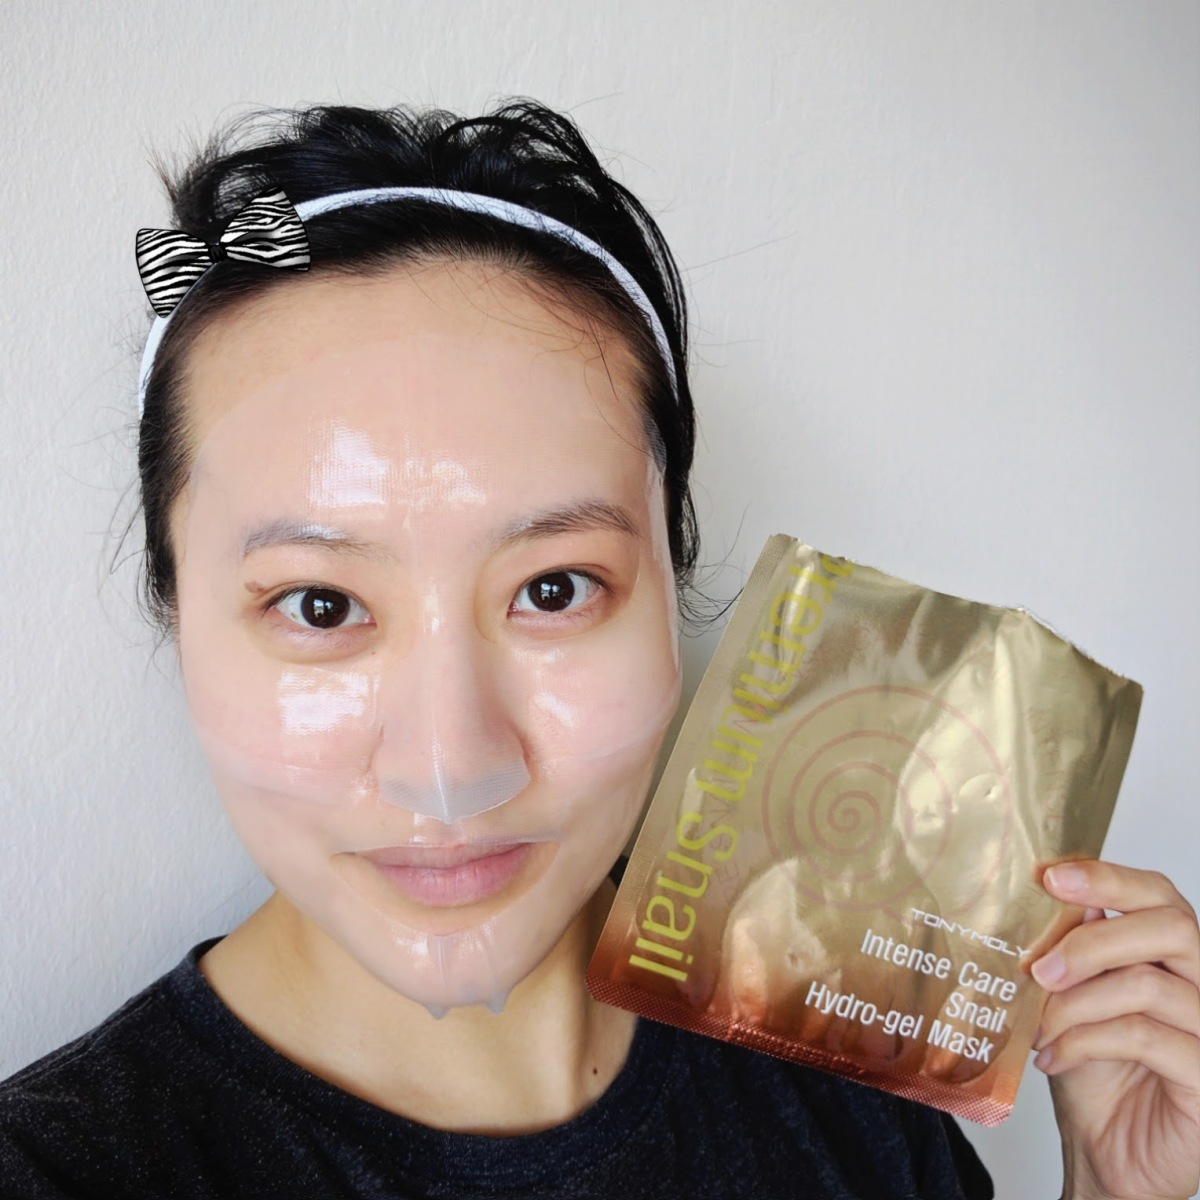 Review: Tony Moly Intense Care Snail Hydrogel Mask ★★★☆☆